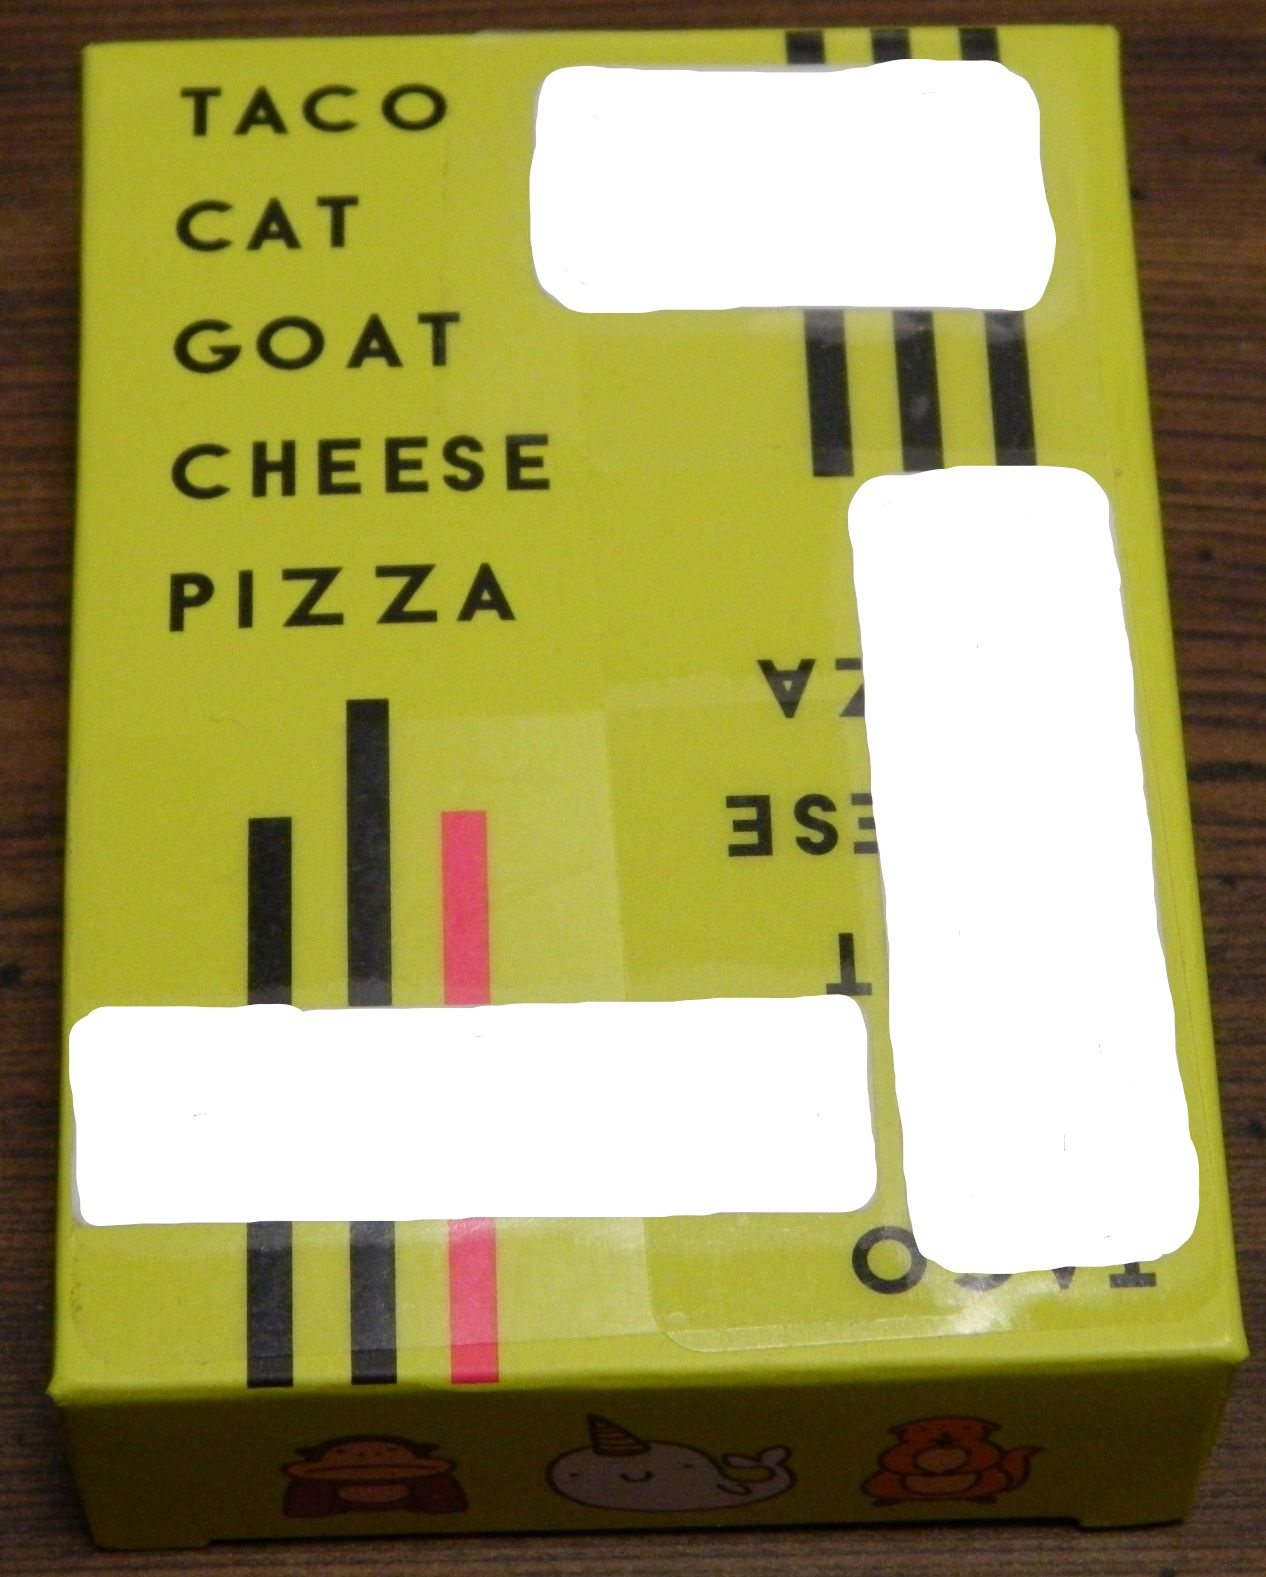 Box for Taco Cat Goat Cheese Pizza